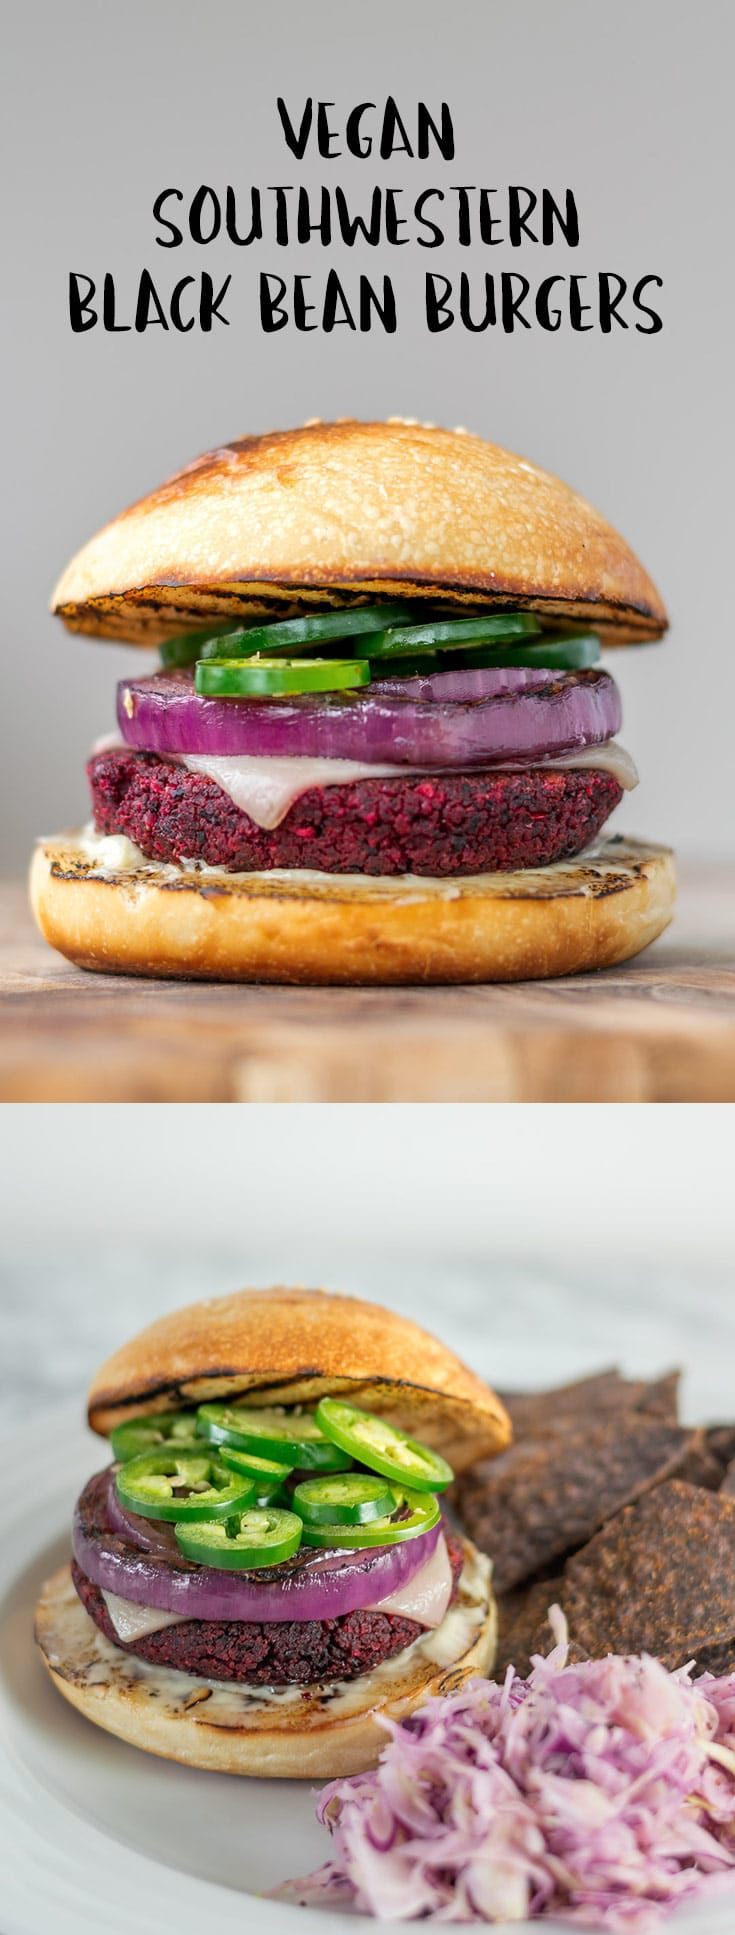 The flavor is amped up in these mouthwatering, spicy vegan southwestern black bean burgers. Super healthy and packed full of good for you ingredients. | thecuriouschickpea.com #vegan #veggieburgers